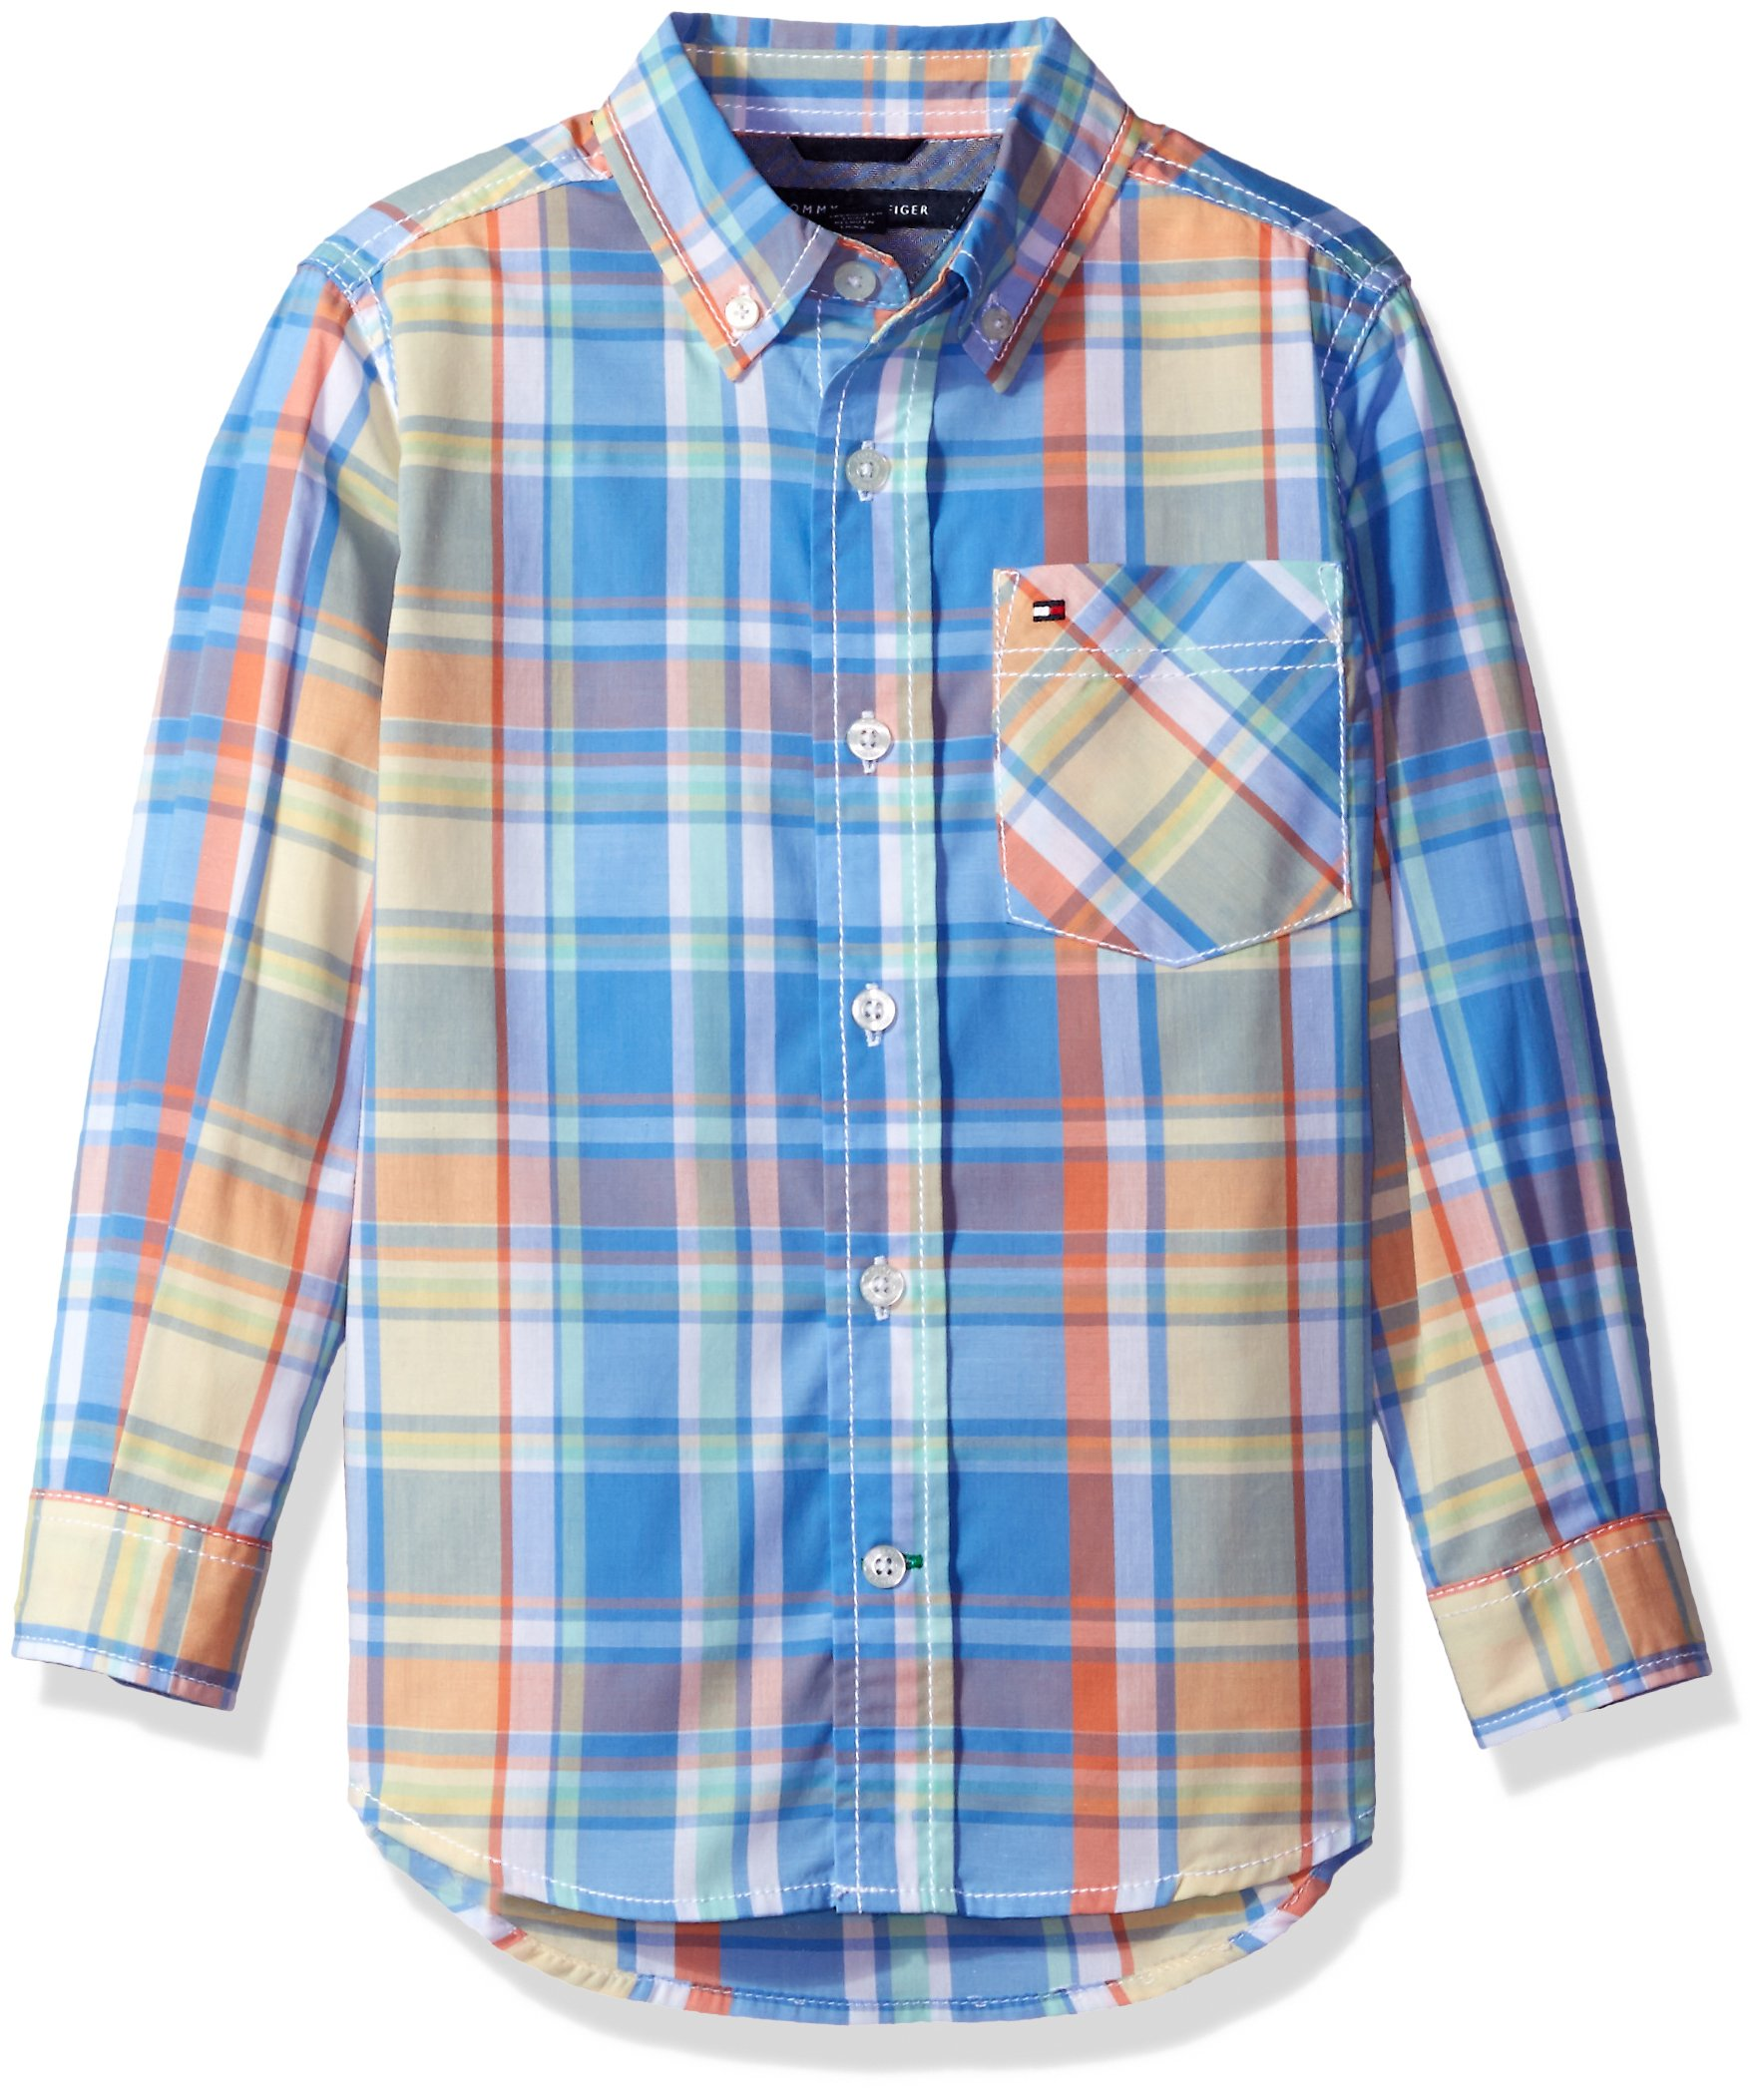 Tommy Hilfiger Boys' Little Long Sleeve Plaid Woven Shirt, Summer Blue, 6 by Tommy Hilfiger